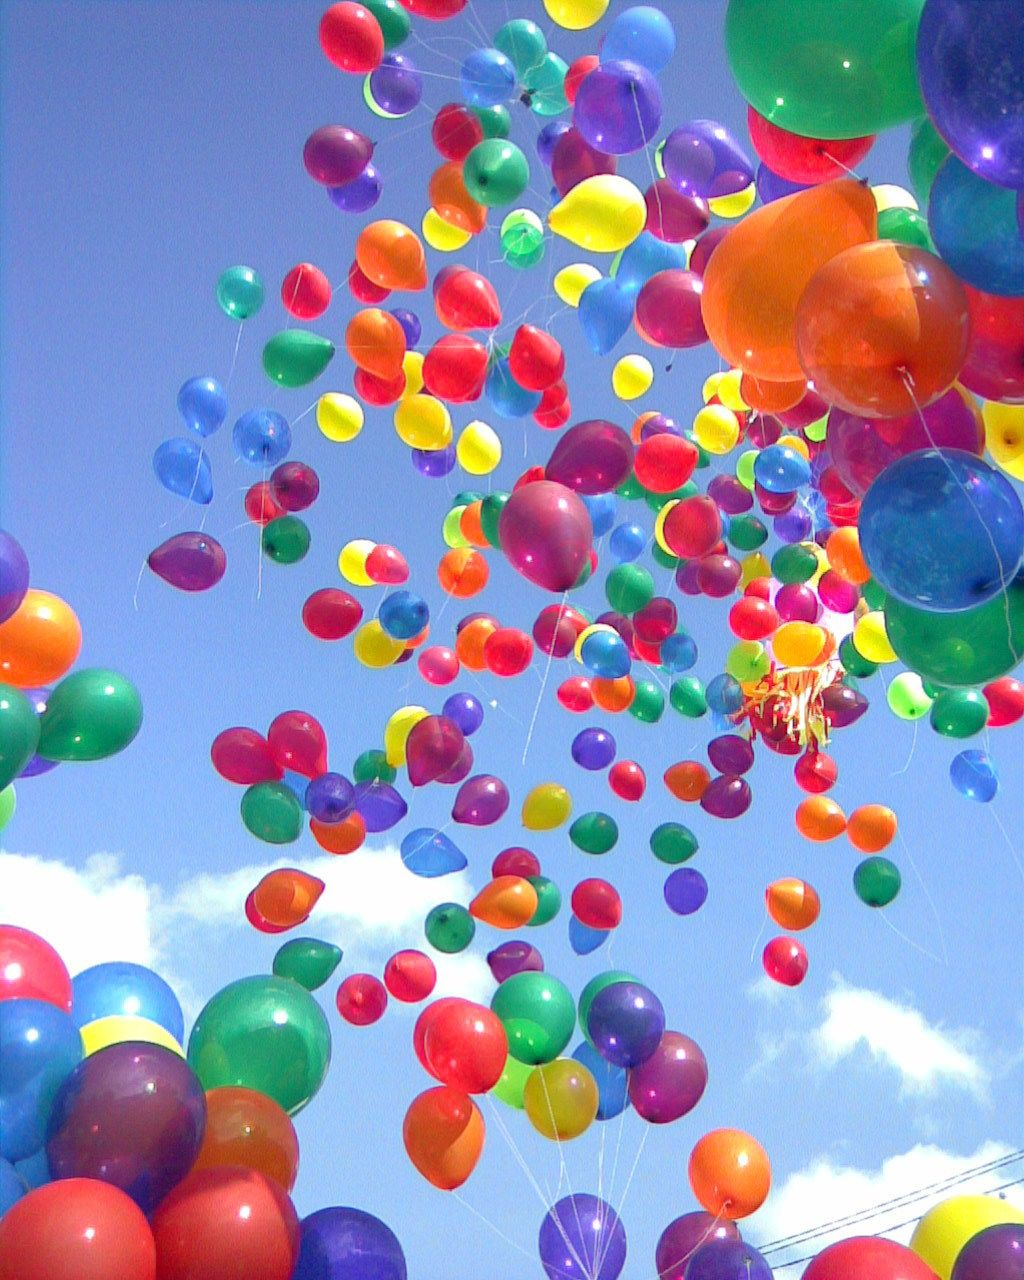 Colors That Make You Happy up up & away everyone puts a message in the balloon, with their